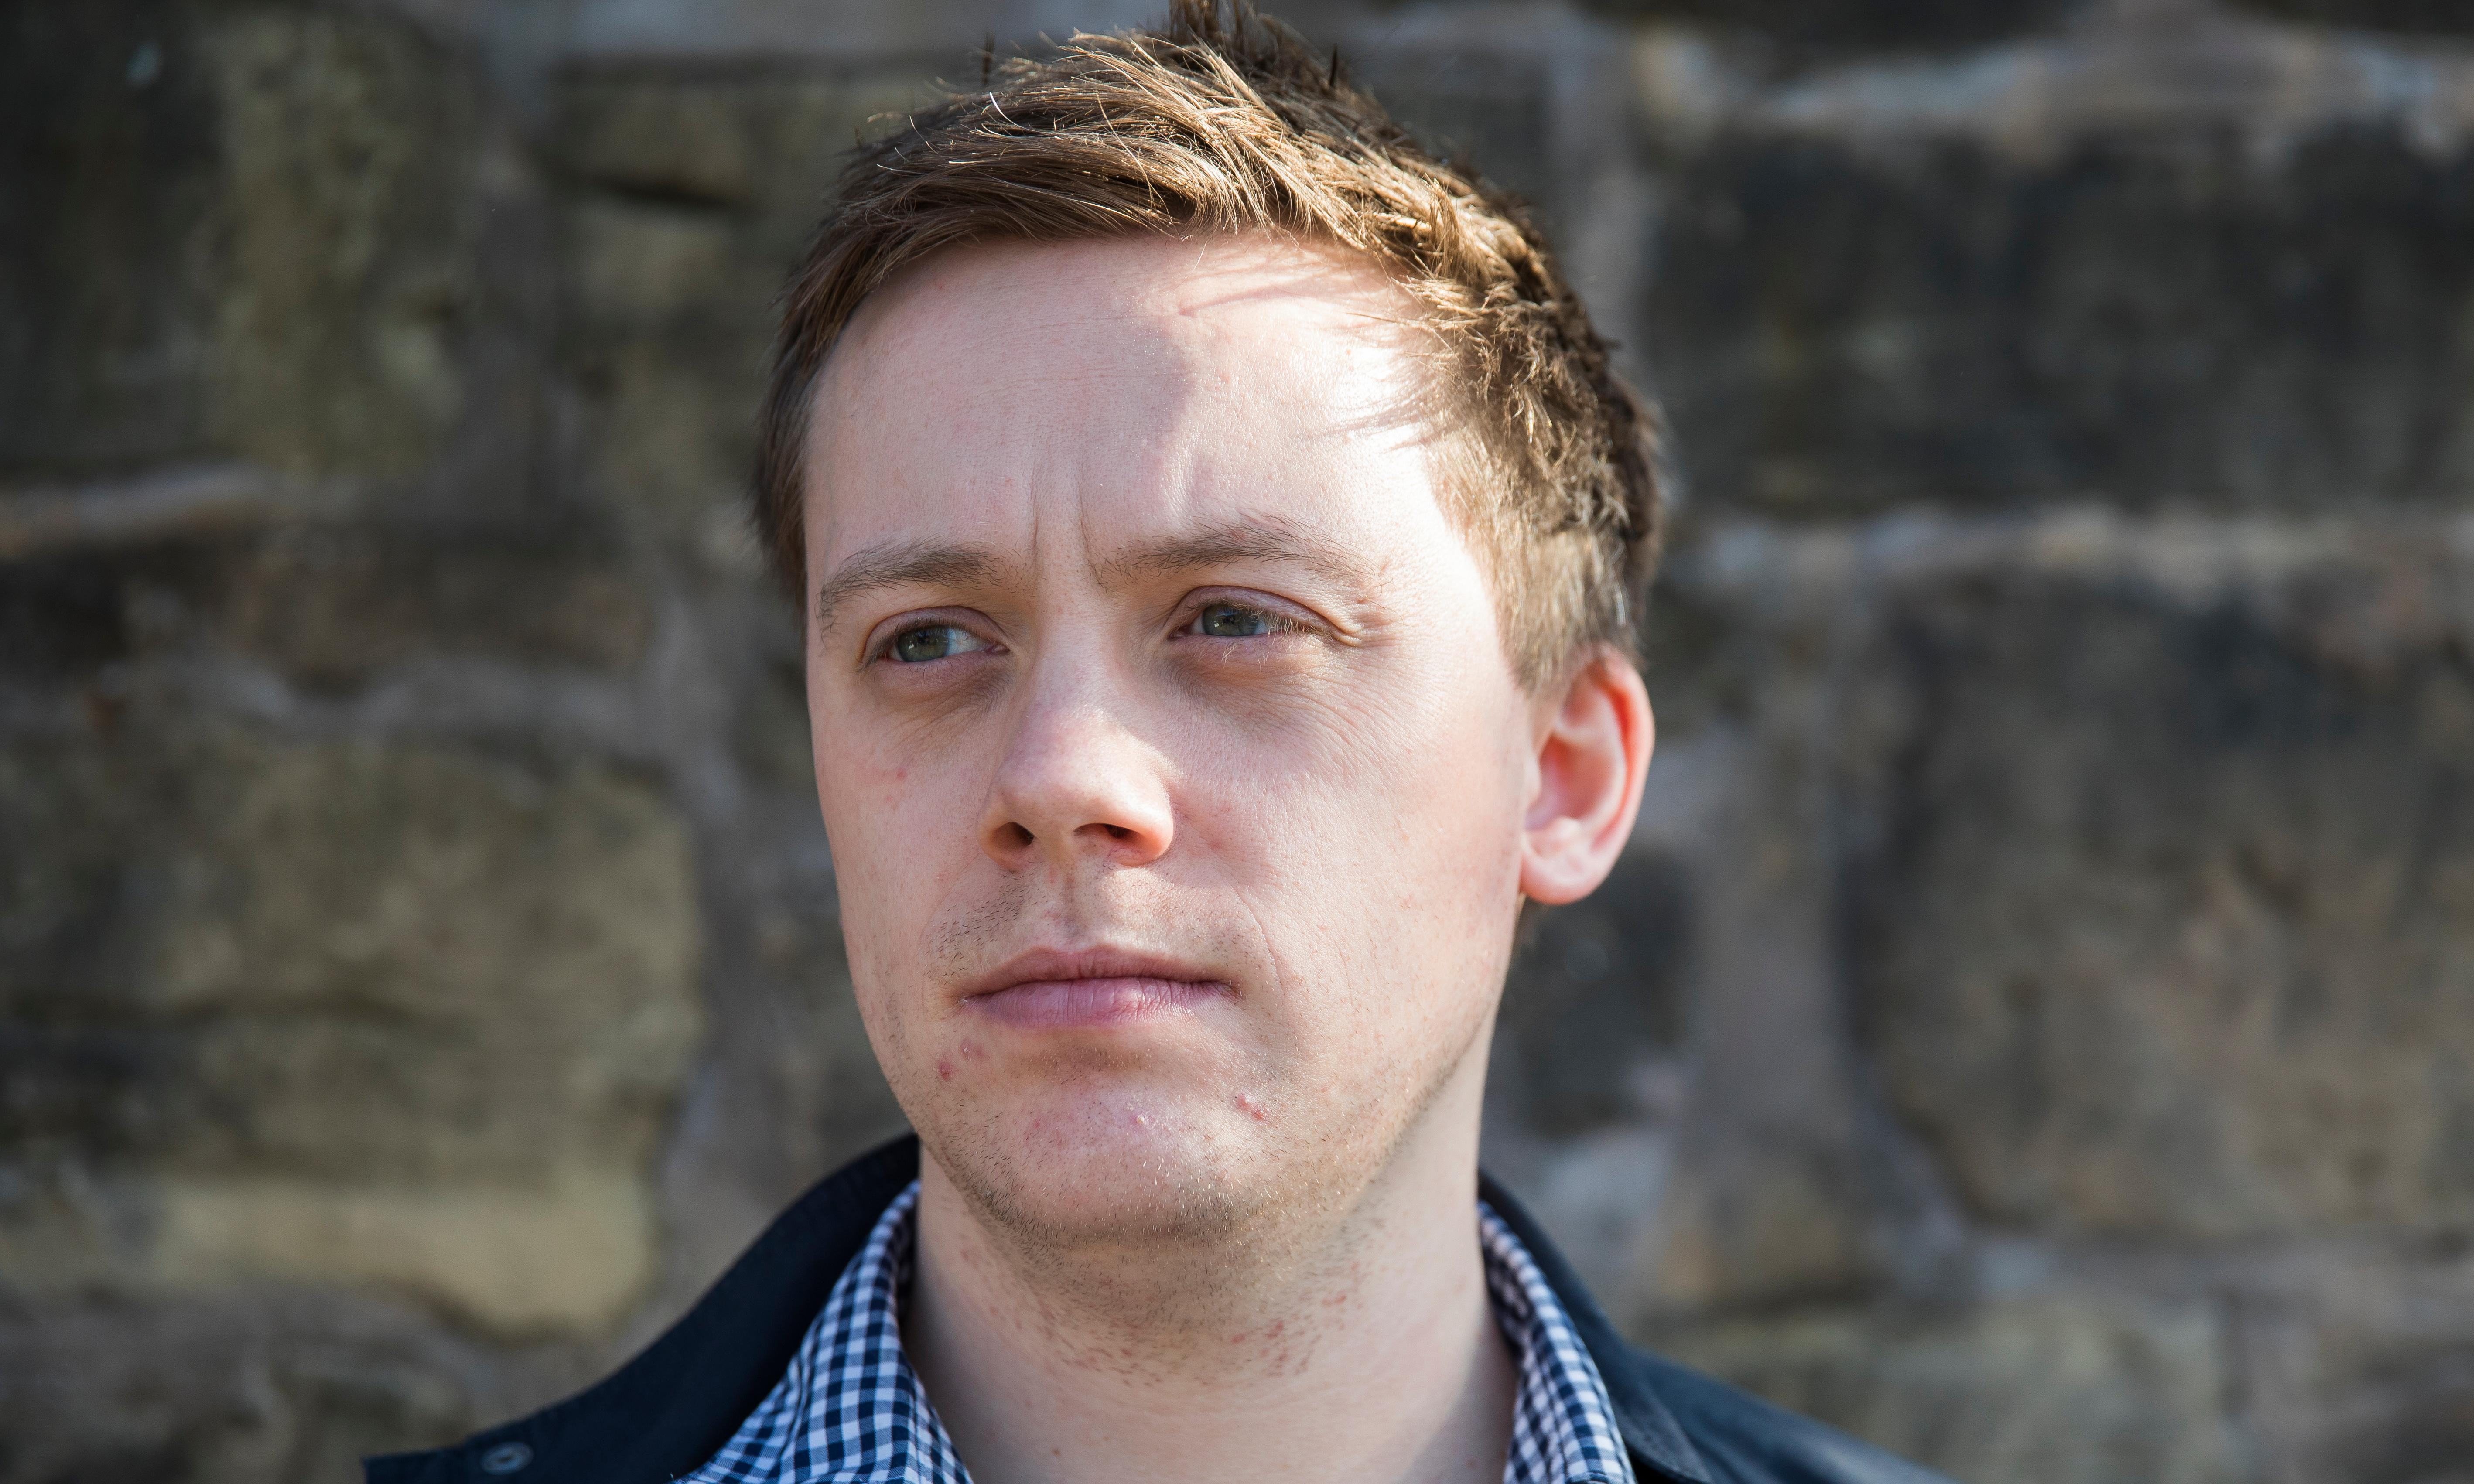 Owen Jones: attackers targeted me for my politics